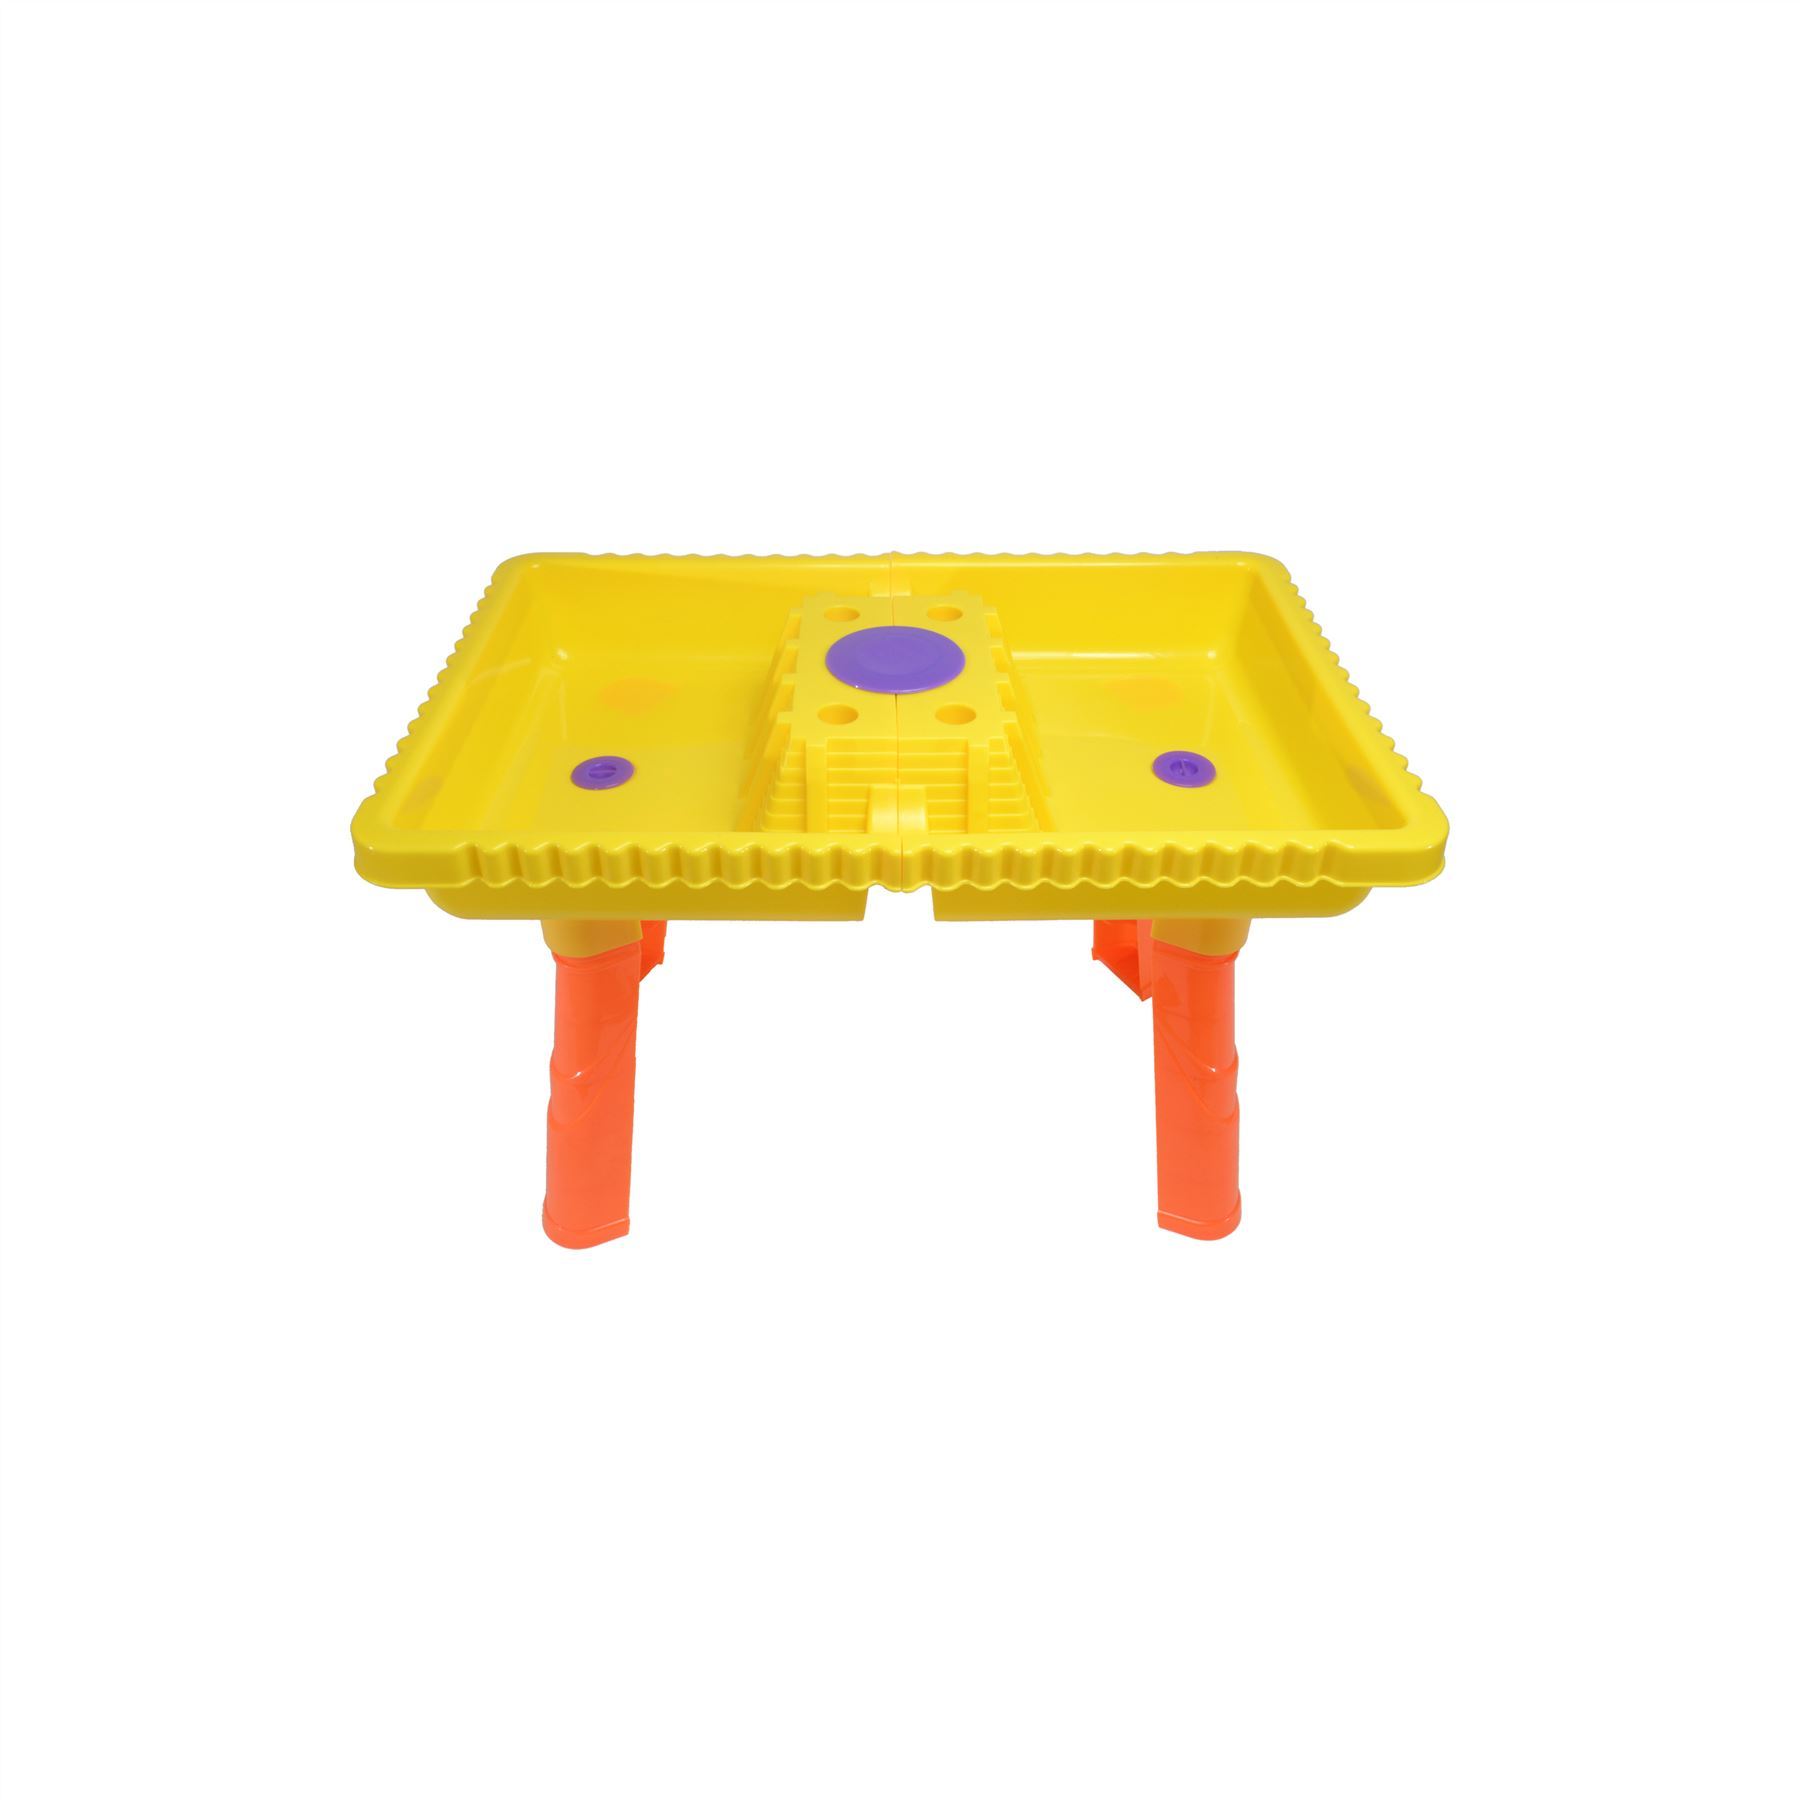 Delightful Castle Sand And Water Table Set With 2